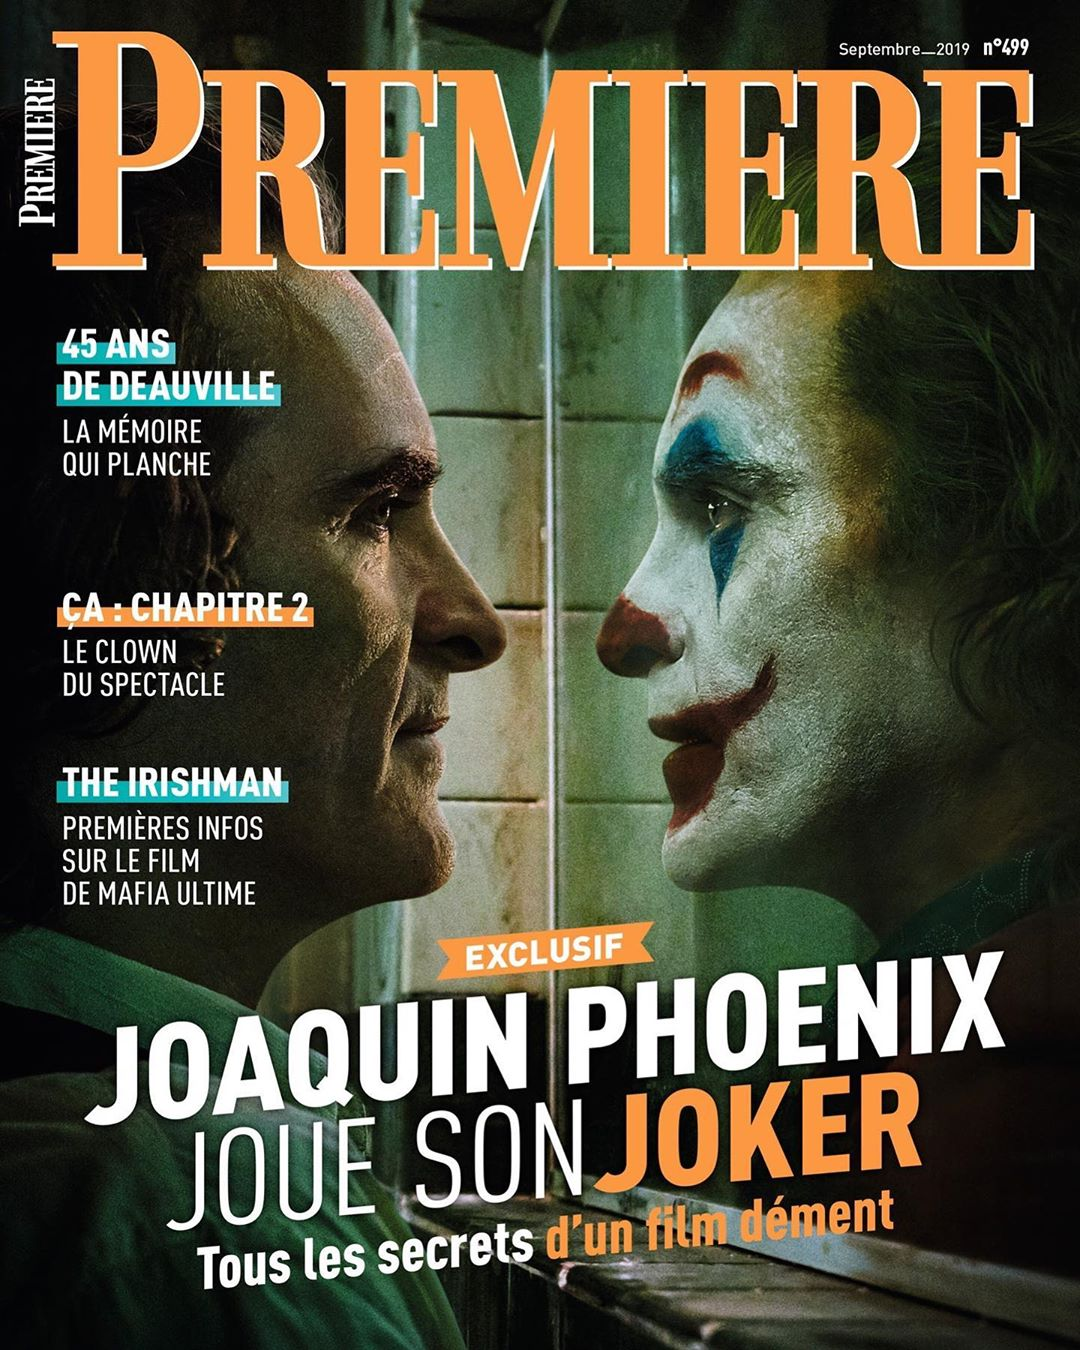 Joaquin Phoenix as The Joker on the cover of Premiere Magazine